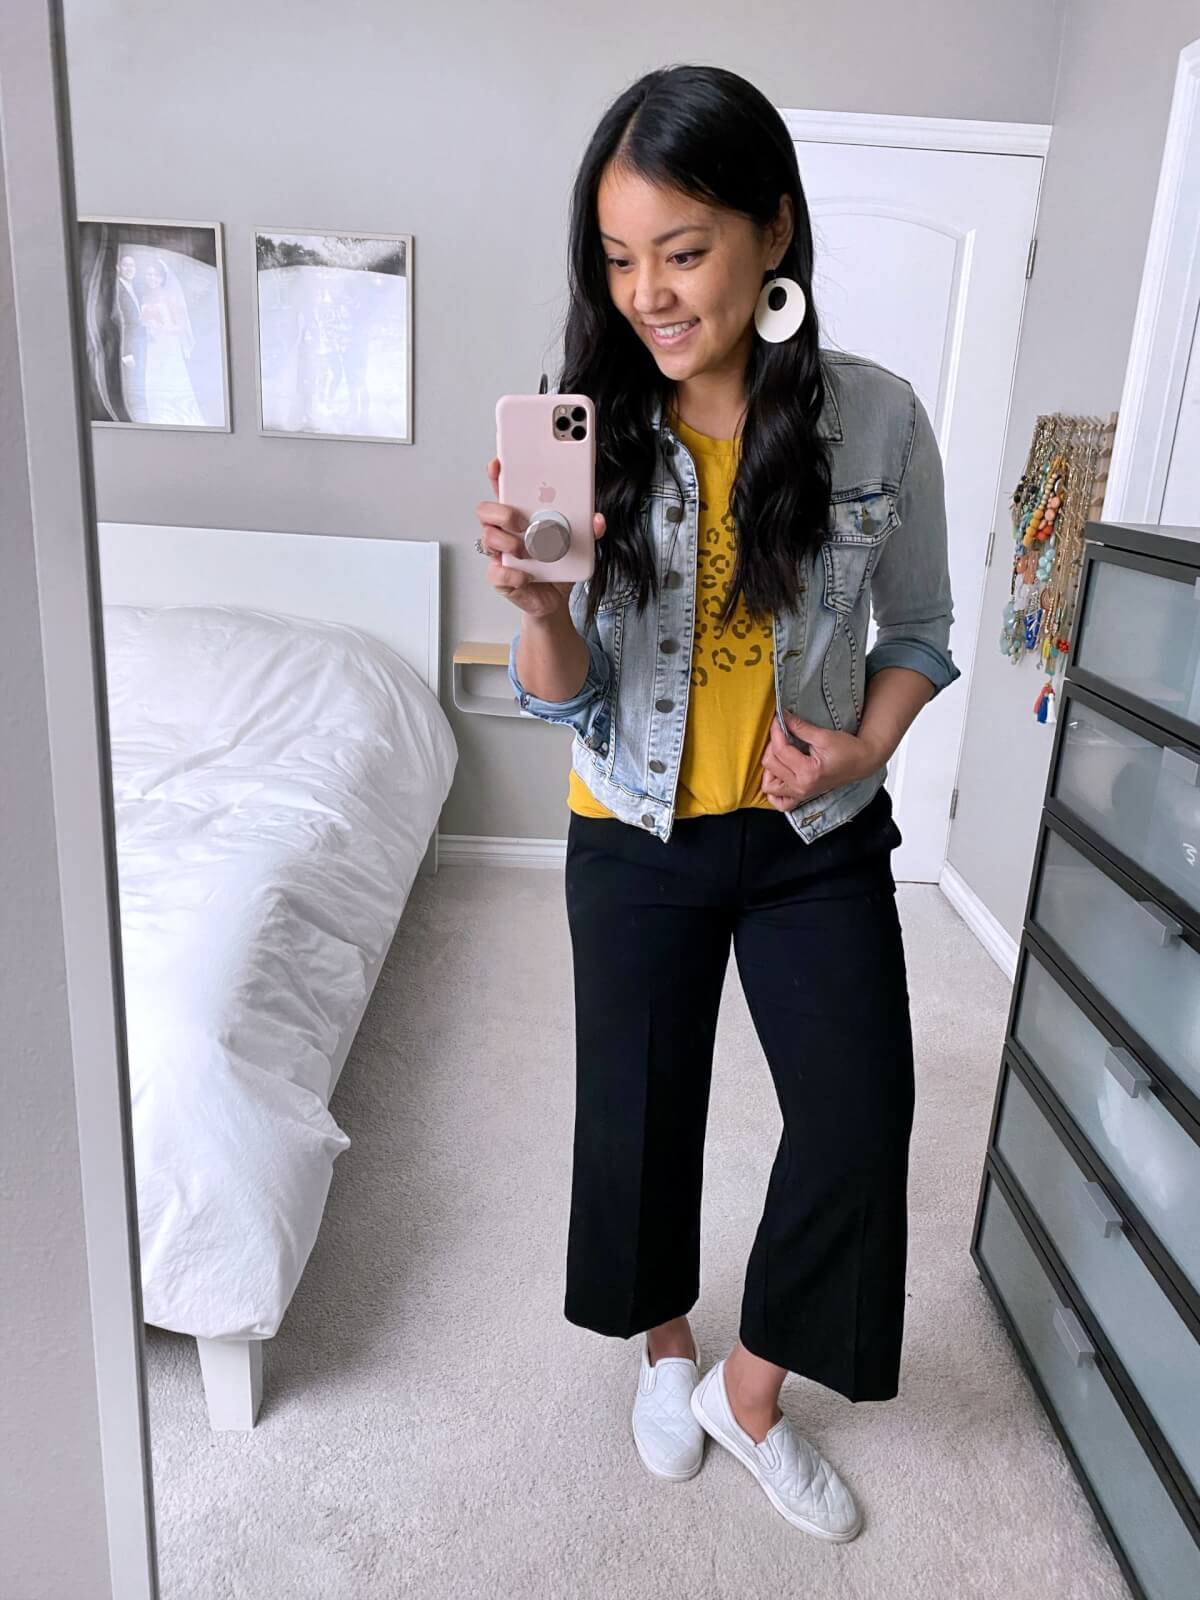 denim jacket outfit: denim jacket + yellow tee + black wide leg pants +white sneakers + white earrings